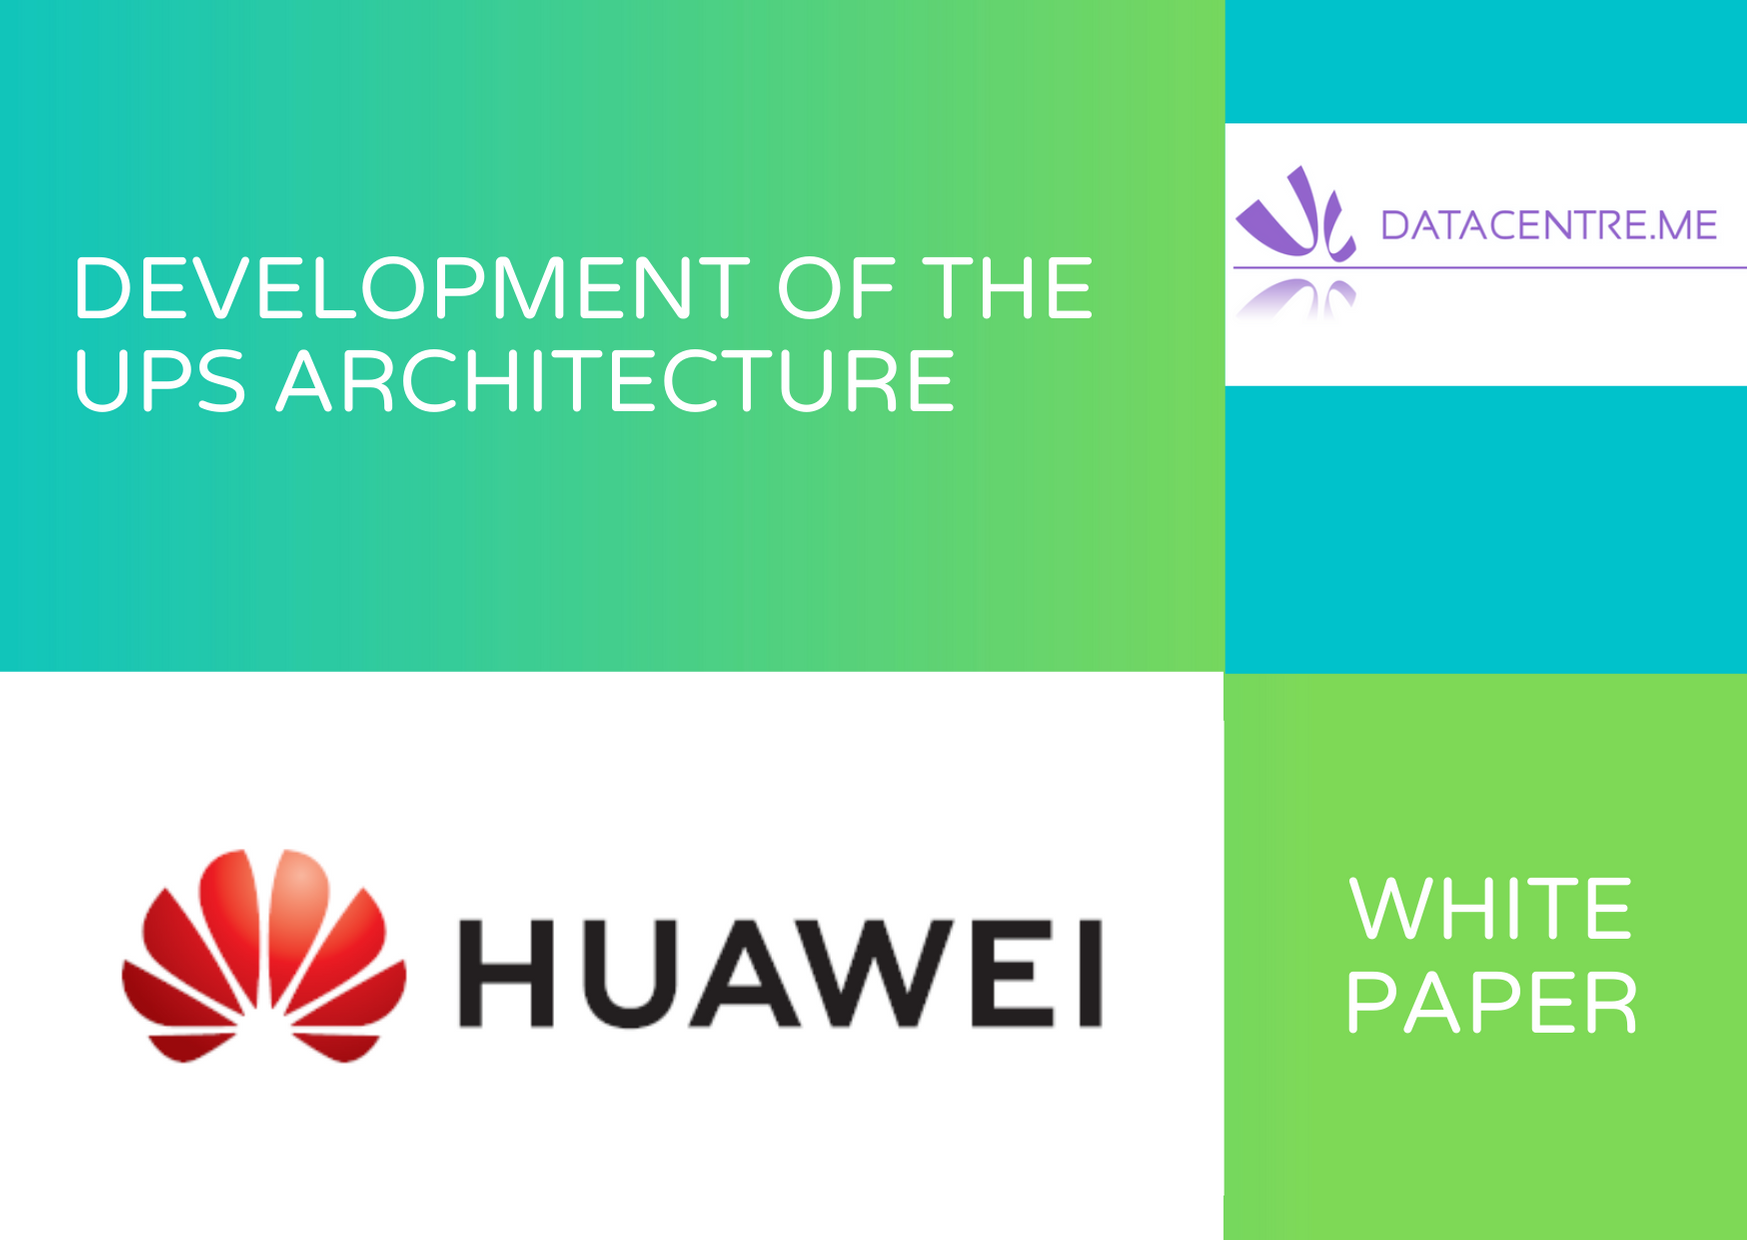 Huawei White Paper 1 Development of the UPS Architecture